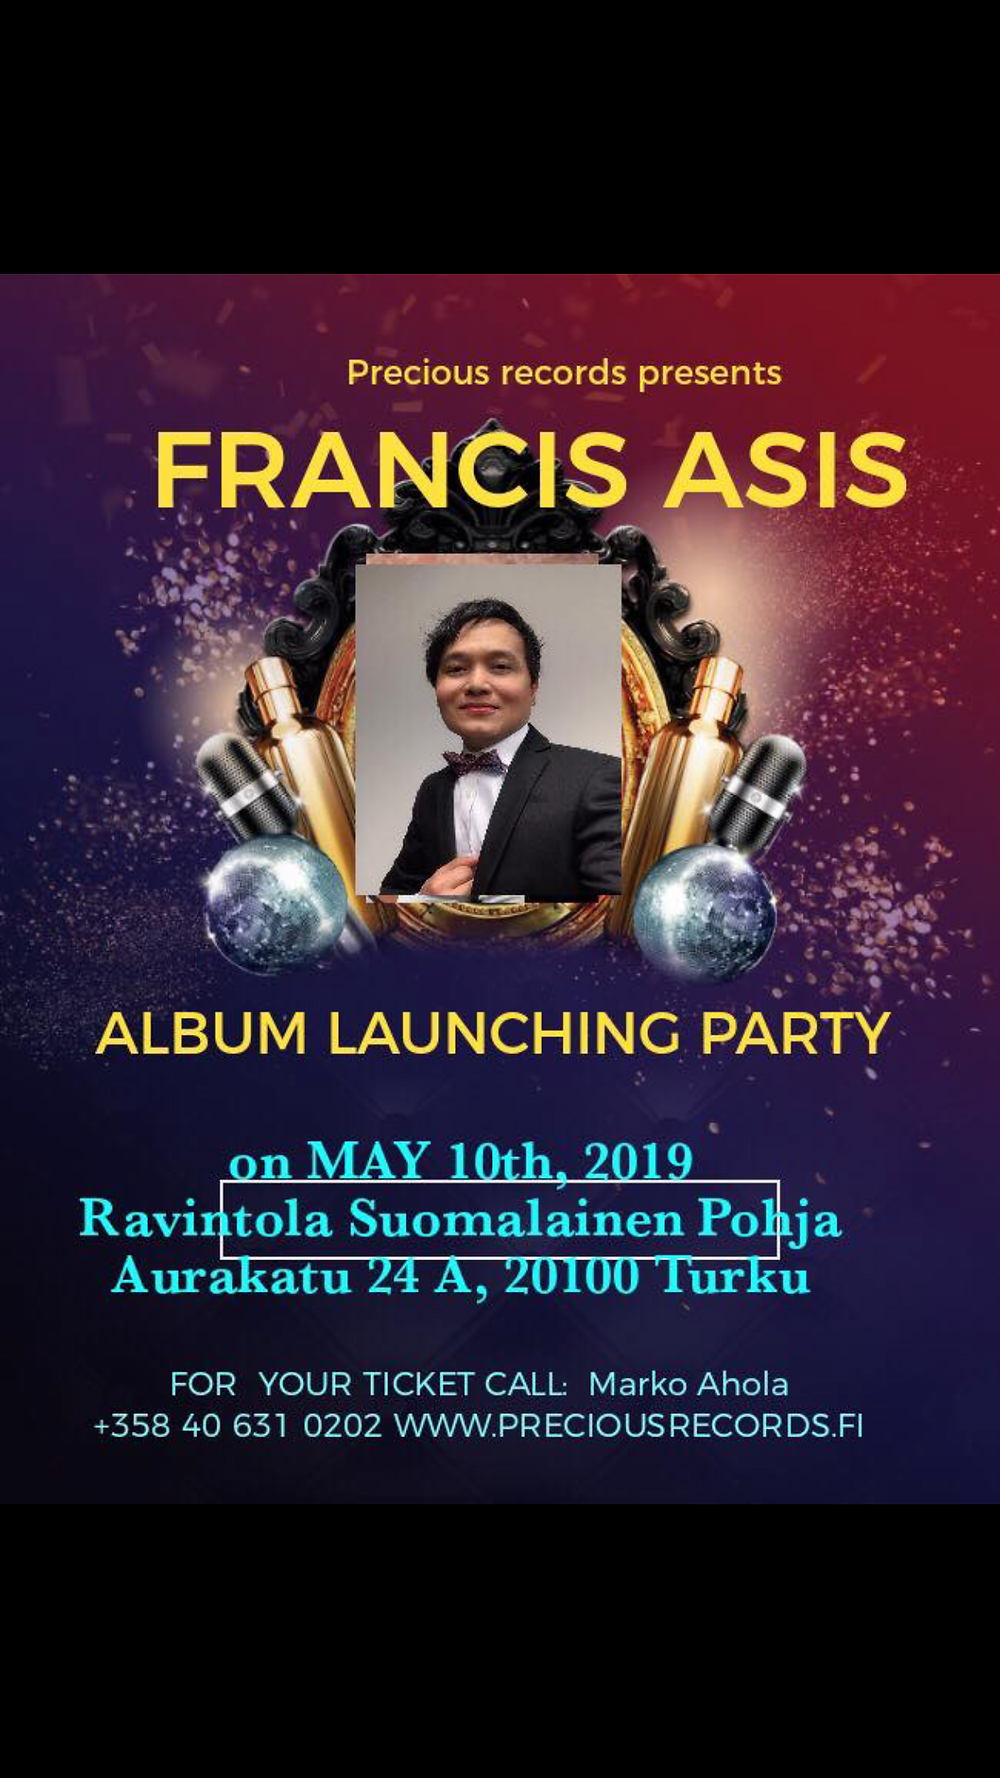 Francis Asis Album Launching Party